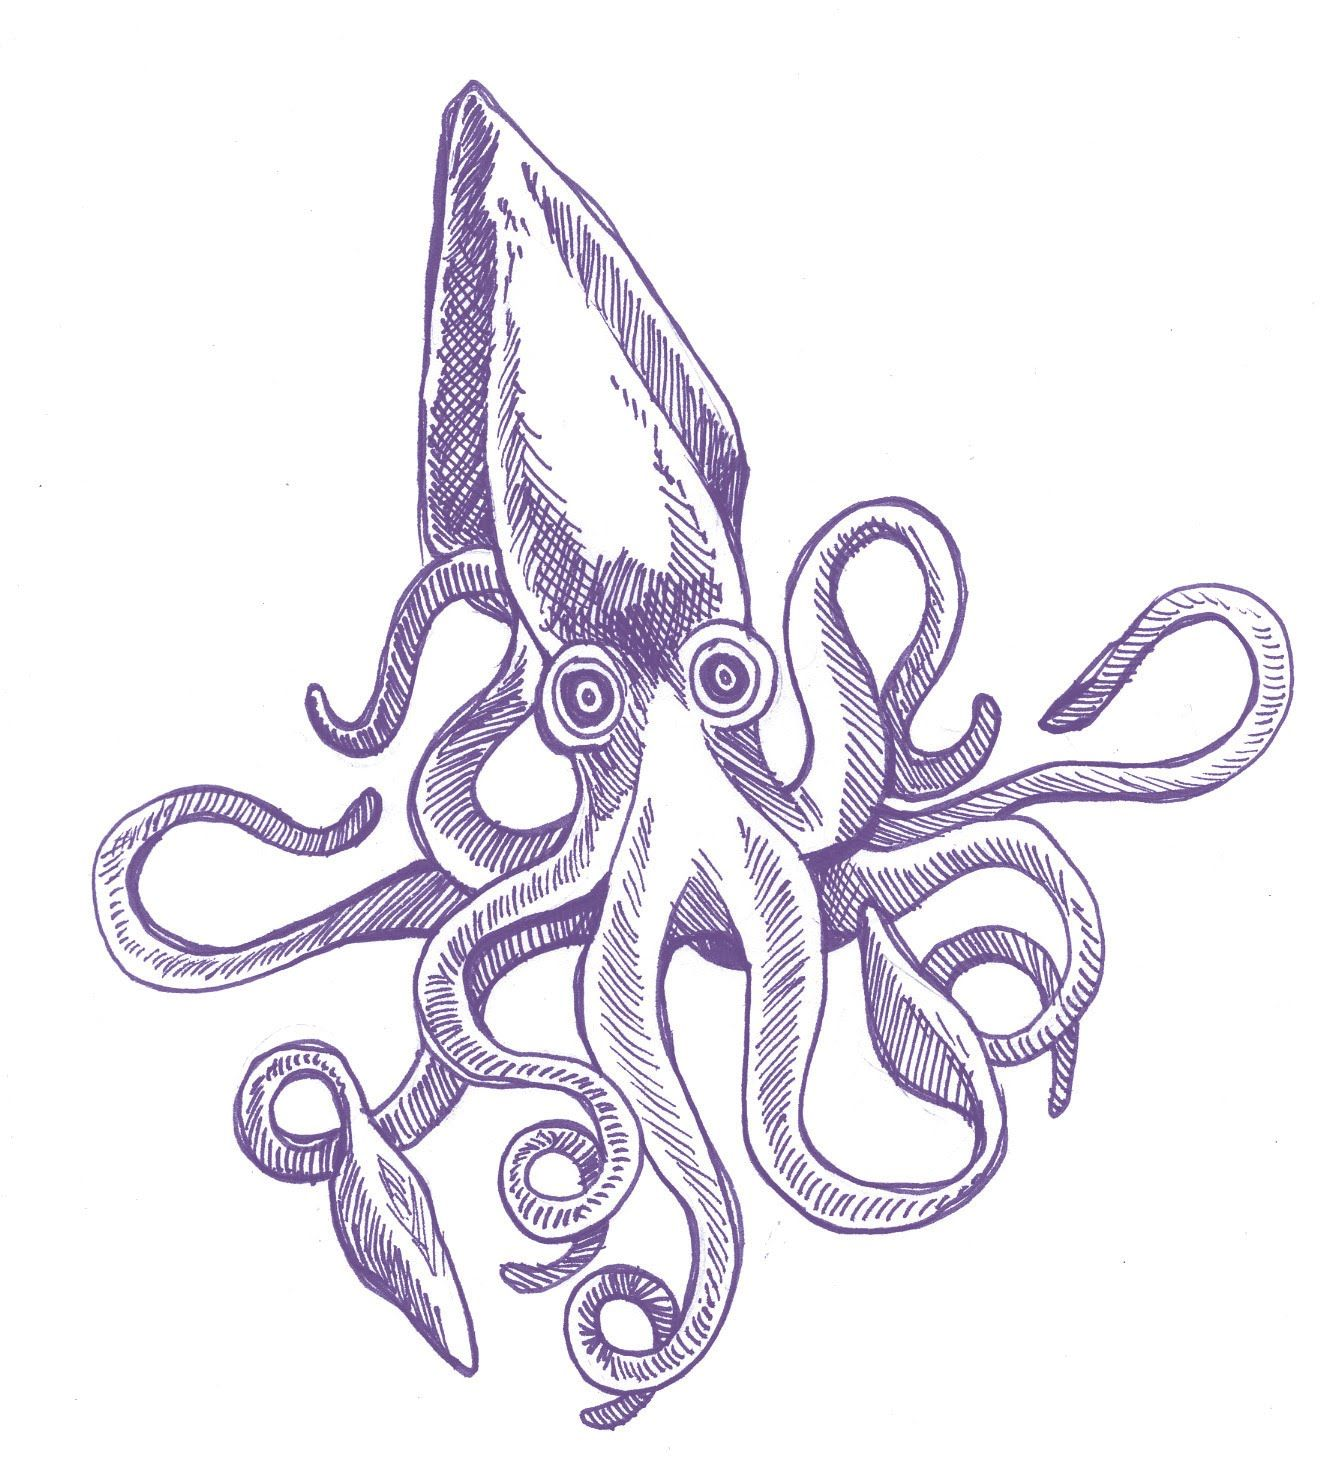 Squid Squid Drawing Squid Tattoo Octopus Tattoo